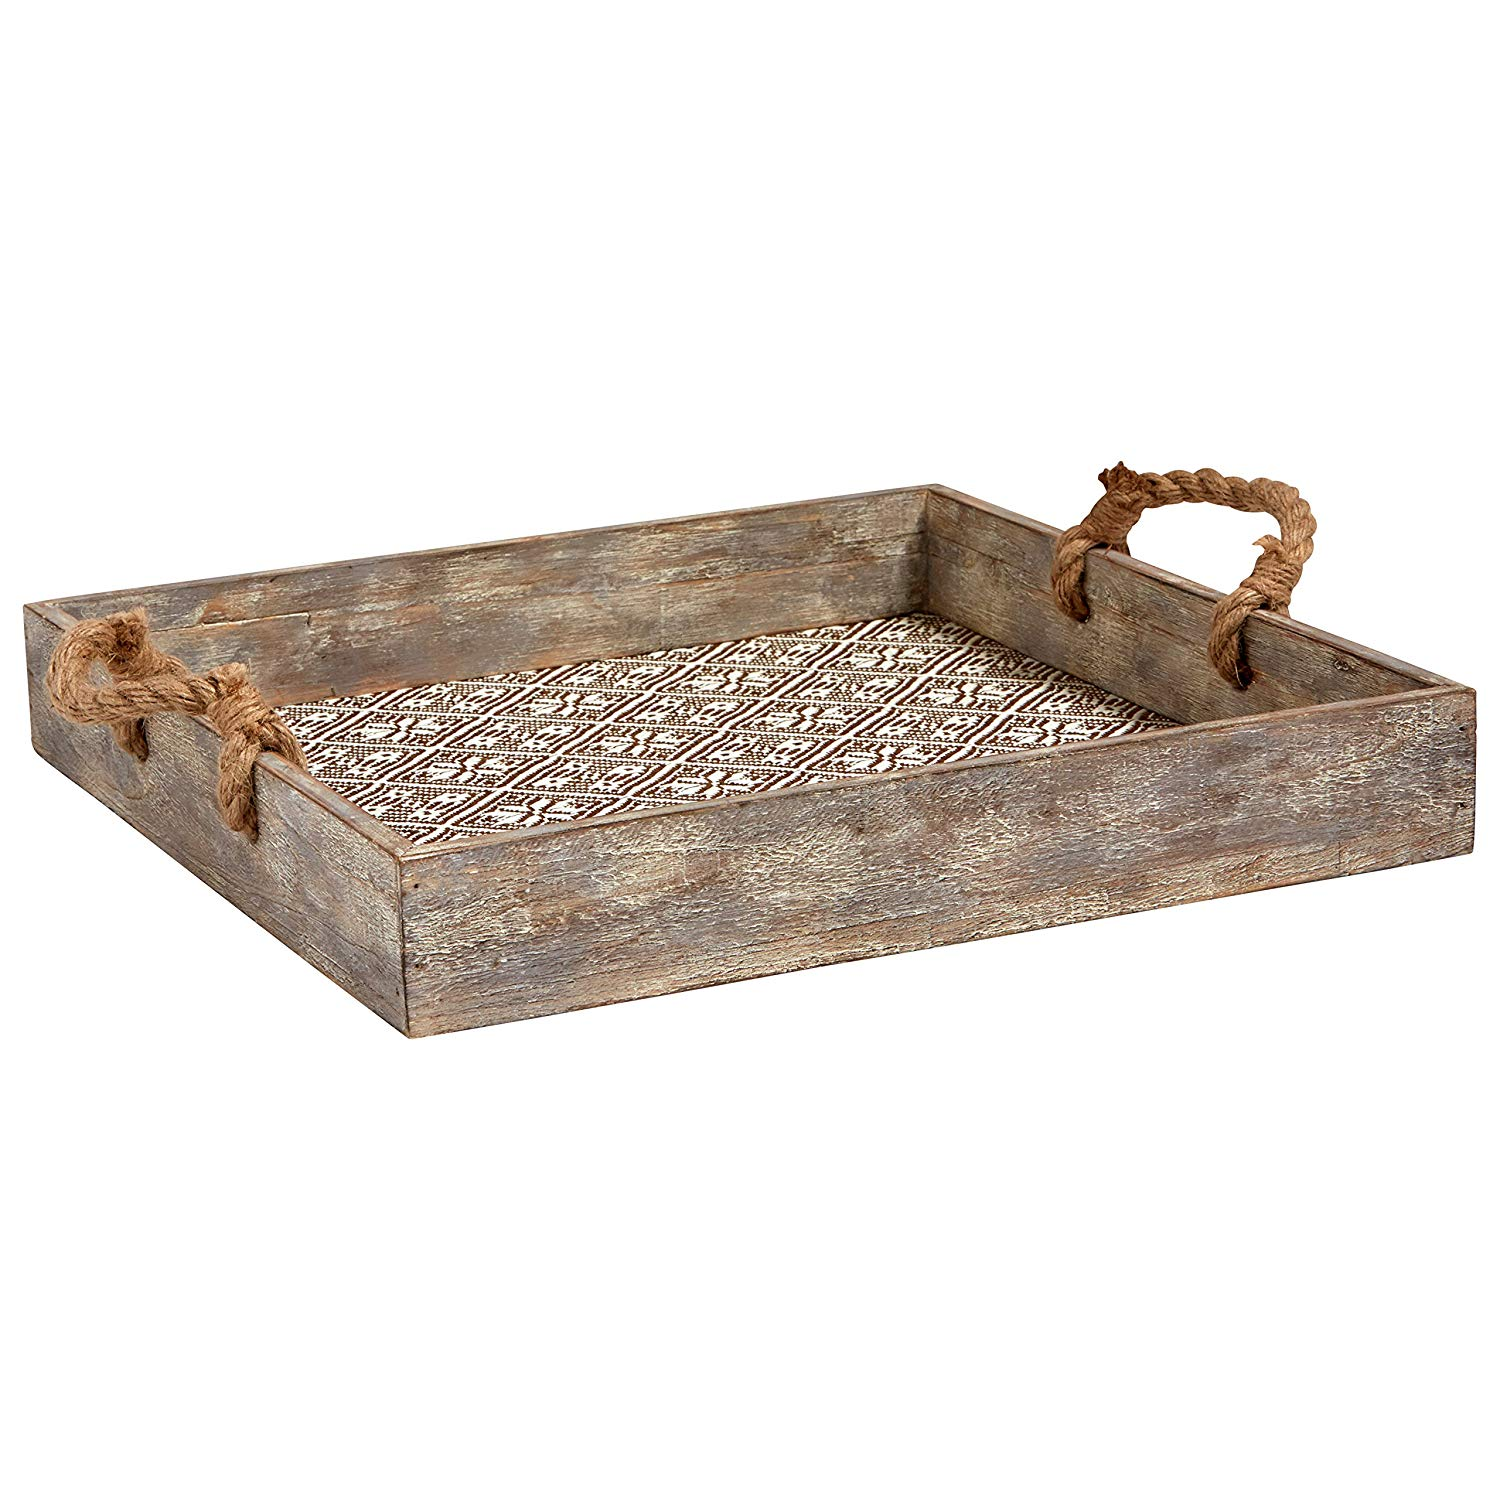 Add this Stone & Beam Rustic Farmhouse Wood Serving Tray With Patterned Rattan and Rope Handles to your countertop or tabletop with a vase of flowers from your backyard, a few candlestick or a stack of vintage books and there will be no mistaking which style you are trying to achieve.